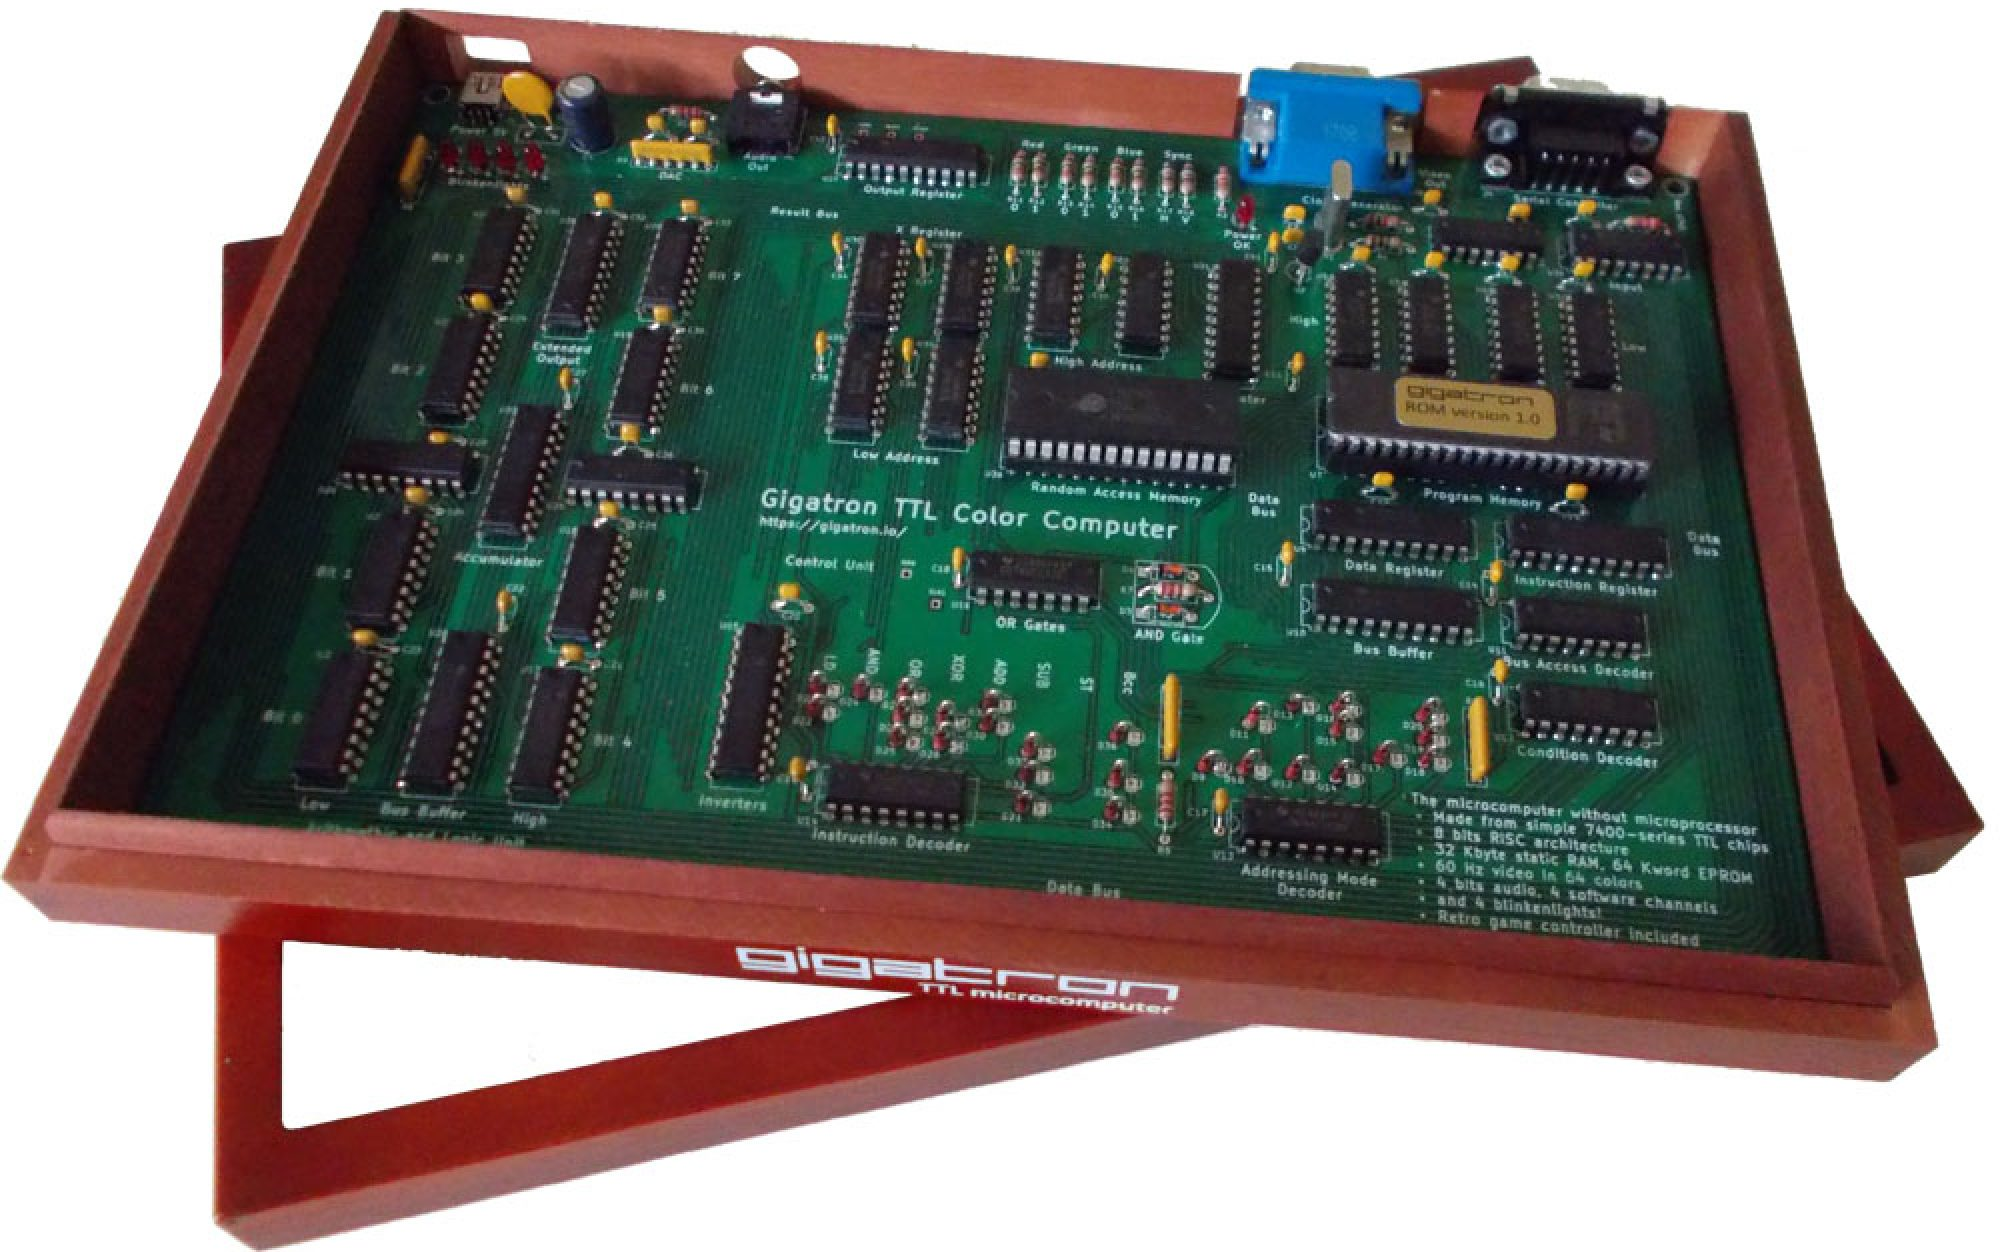 Faq Gigatron Which Includes The Switching Transistor So You Can Happily Use It